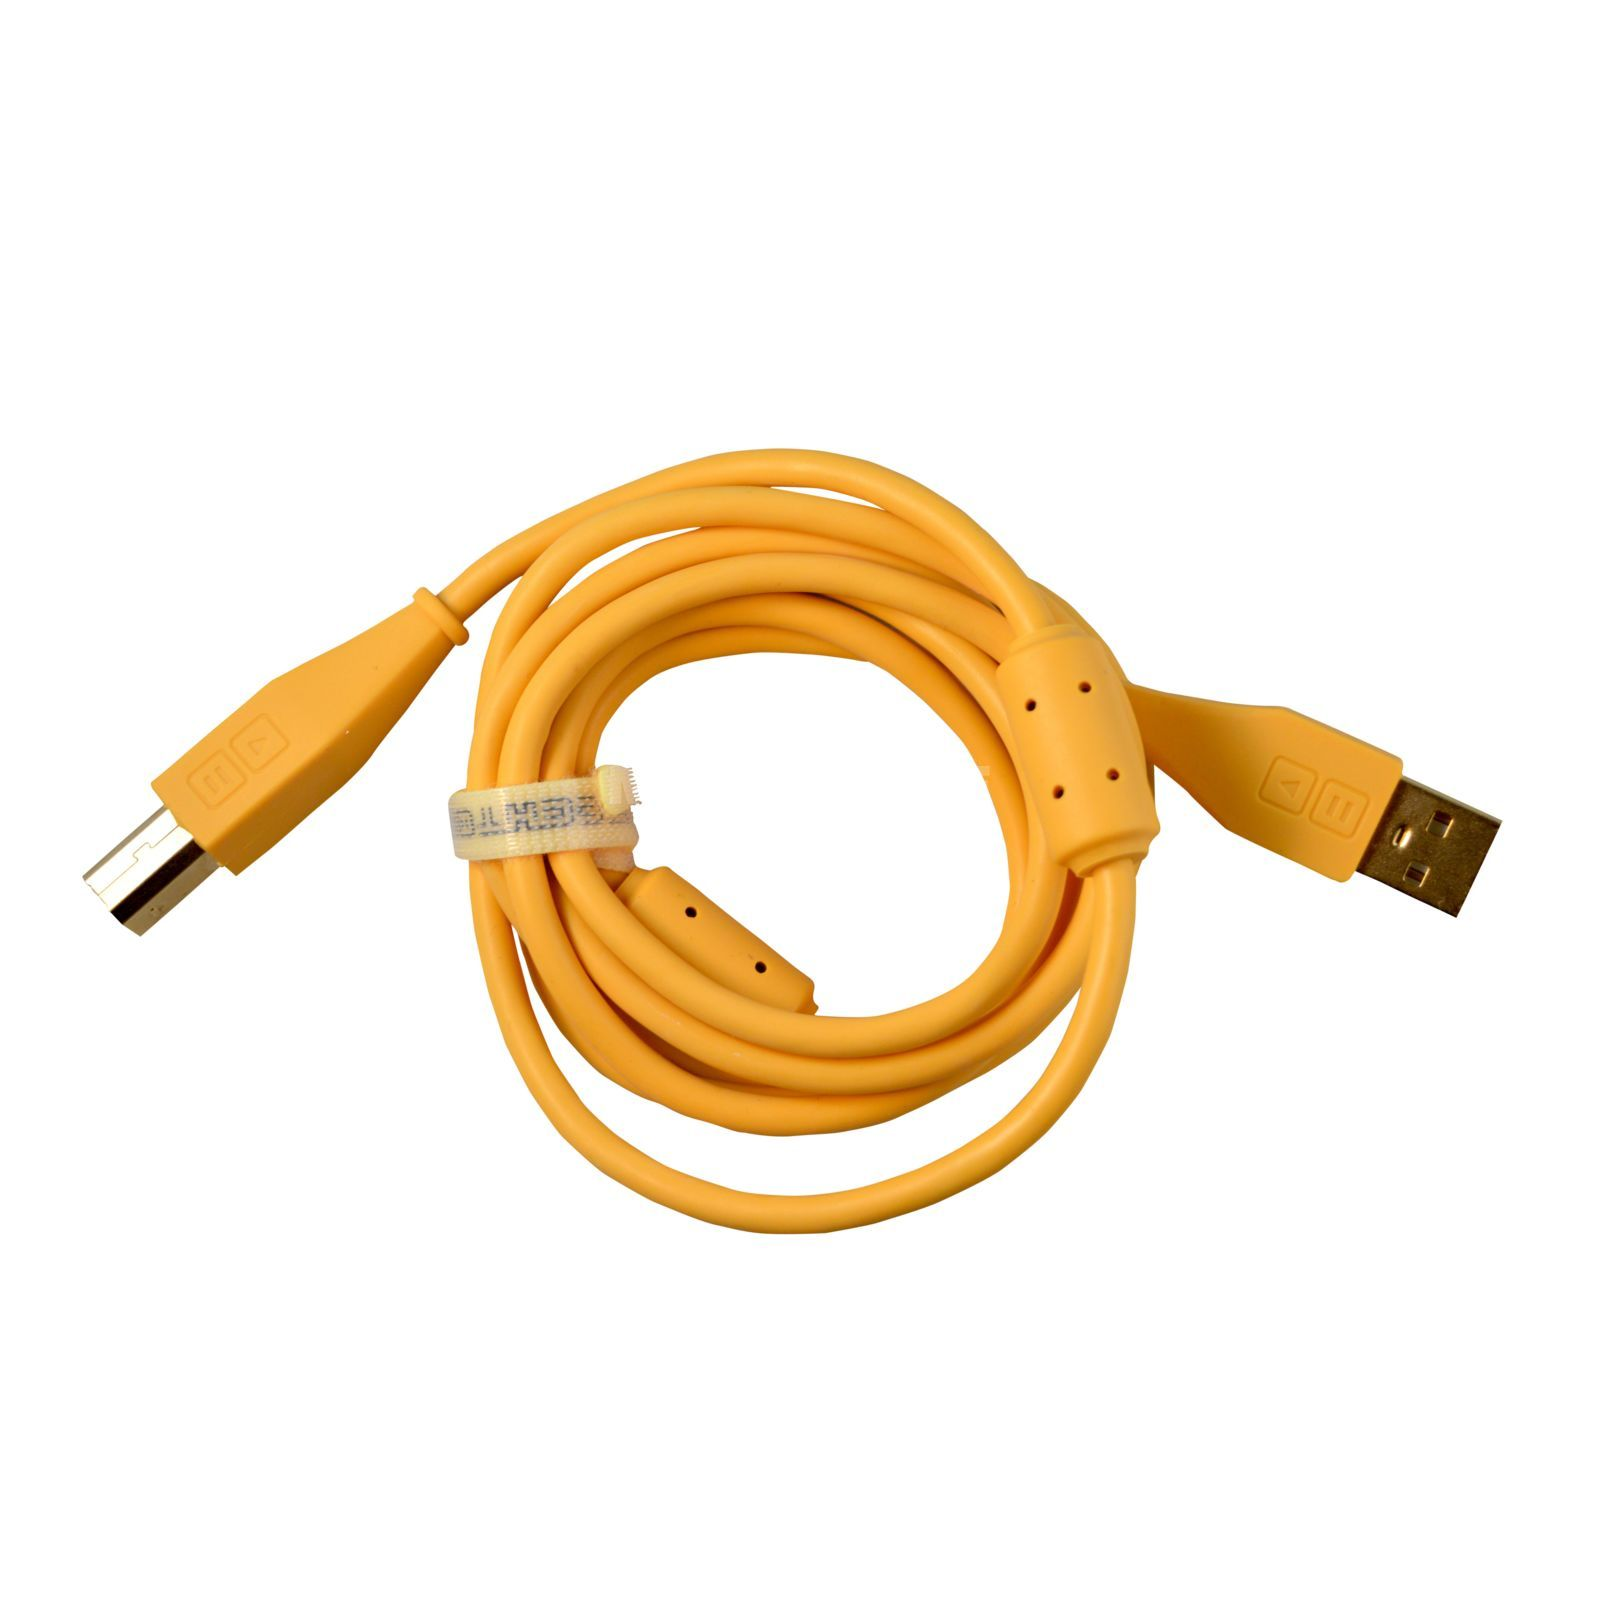 DJ TECHTOOLS DJTT USB Chroma Cable Orange 1,5m, rechte stekker Productafbeelding